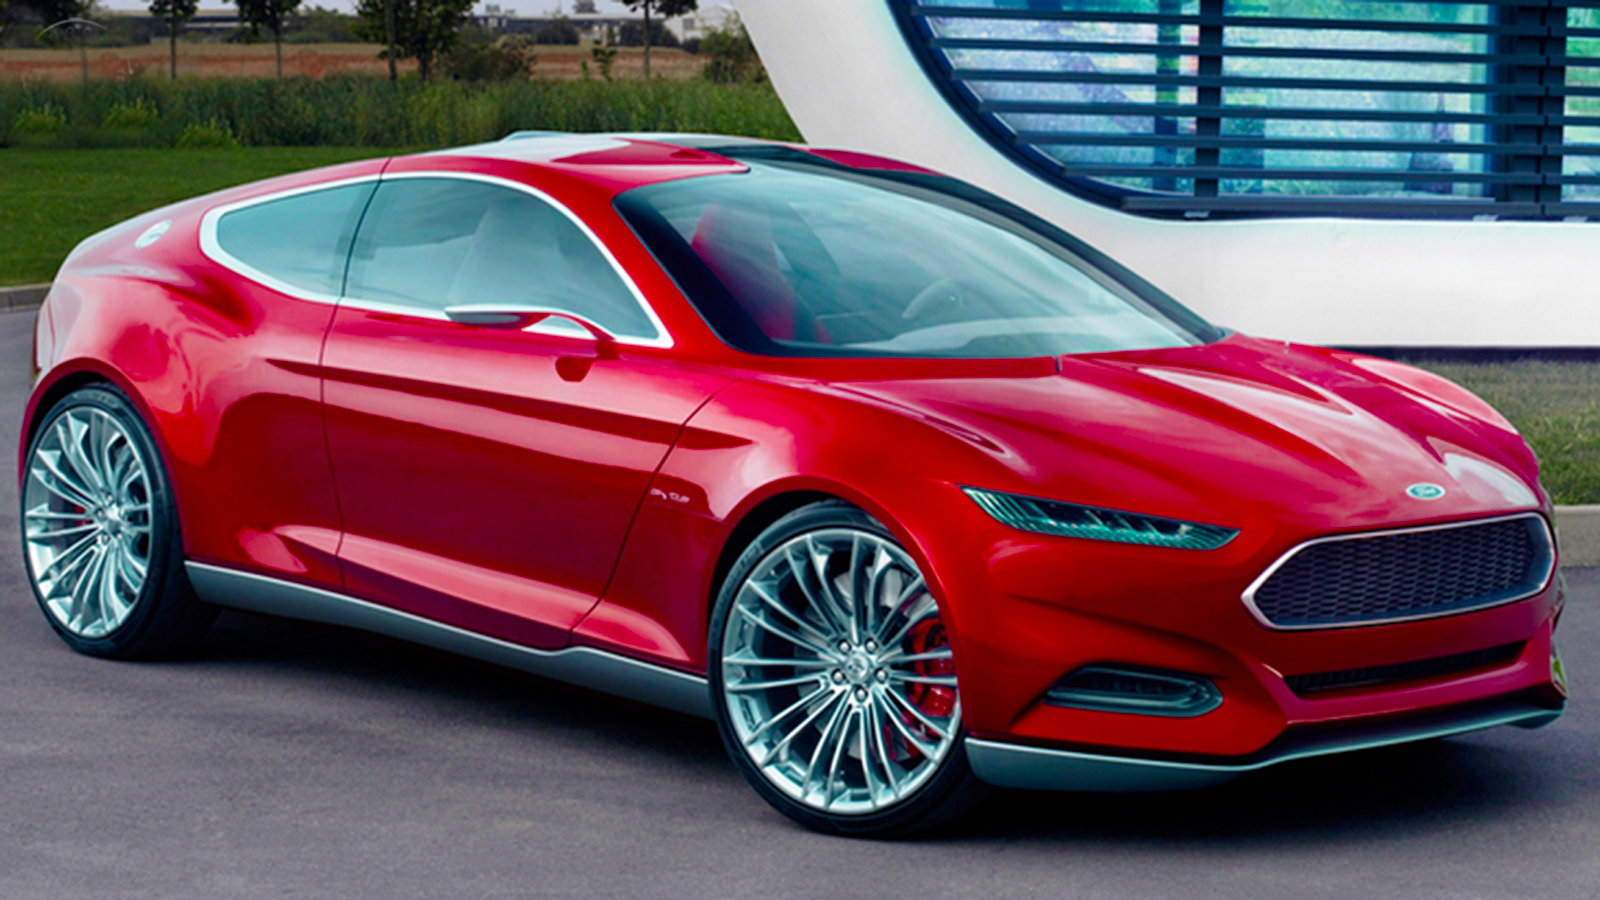 Ford Mustang To Go Electric By 2020